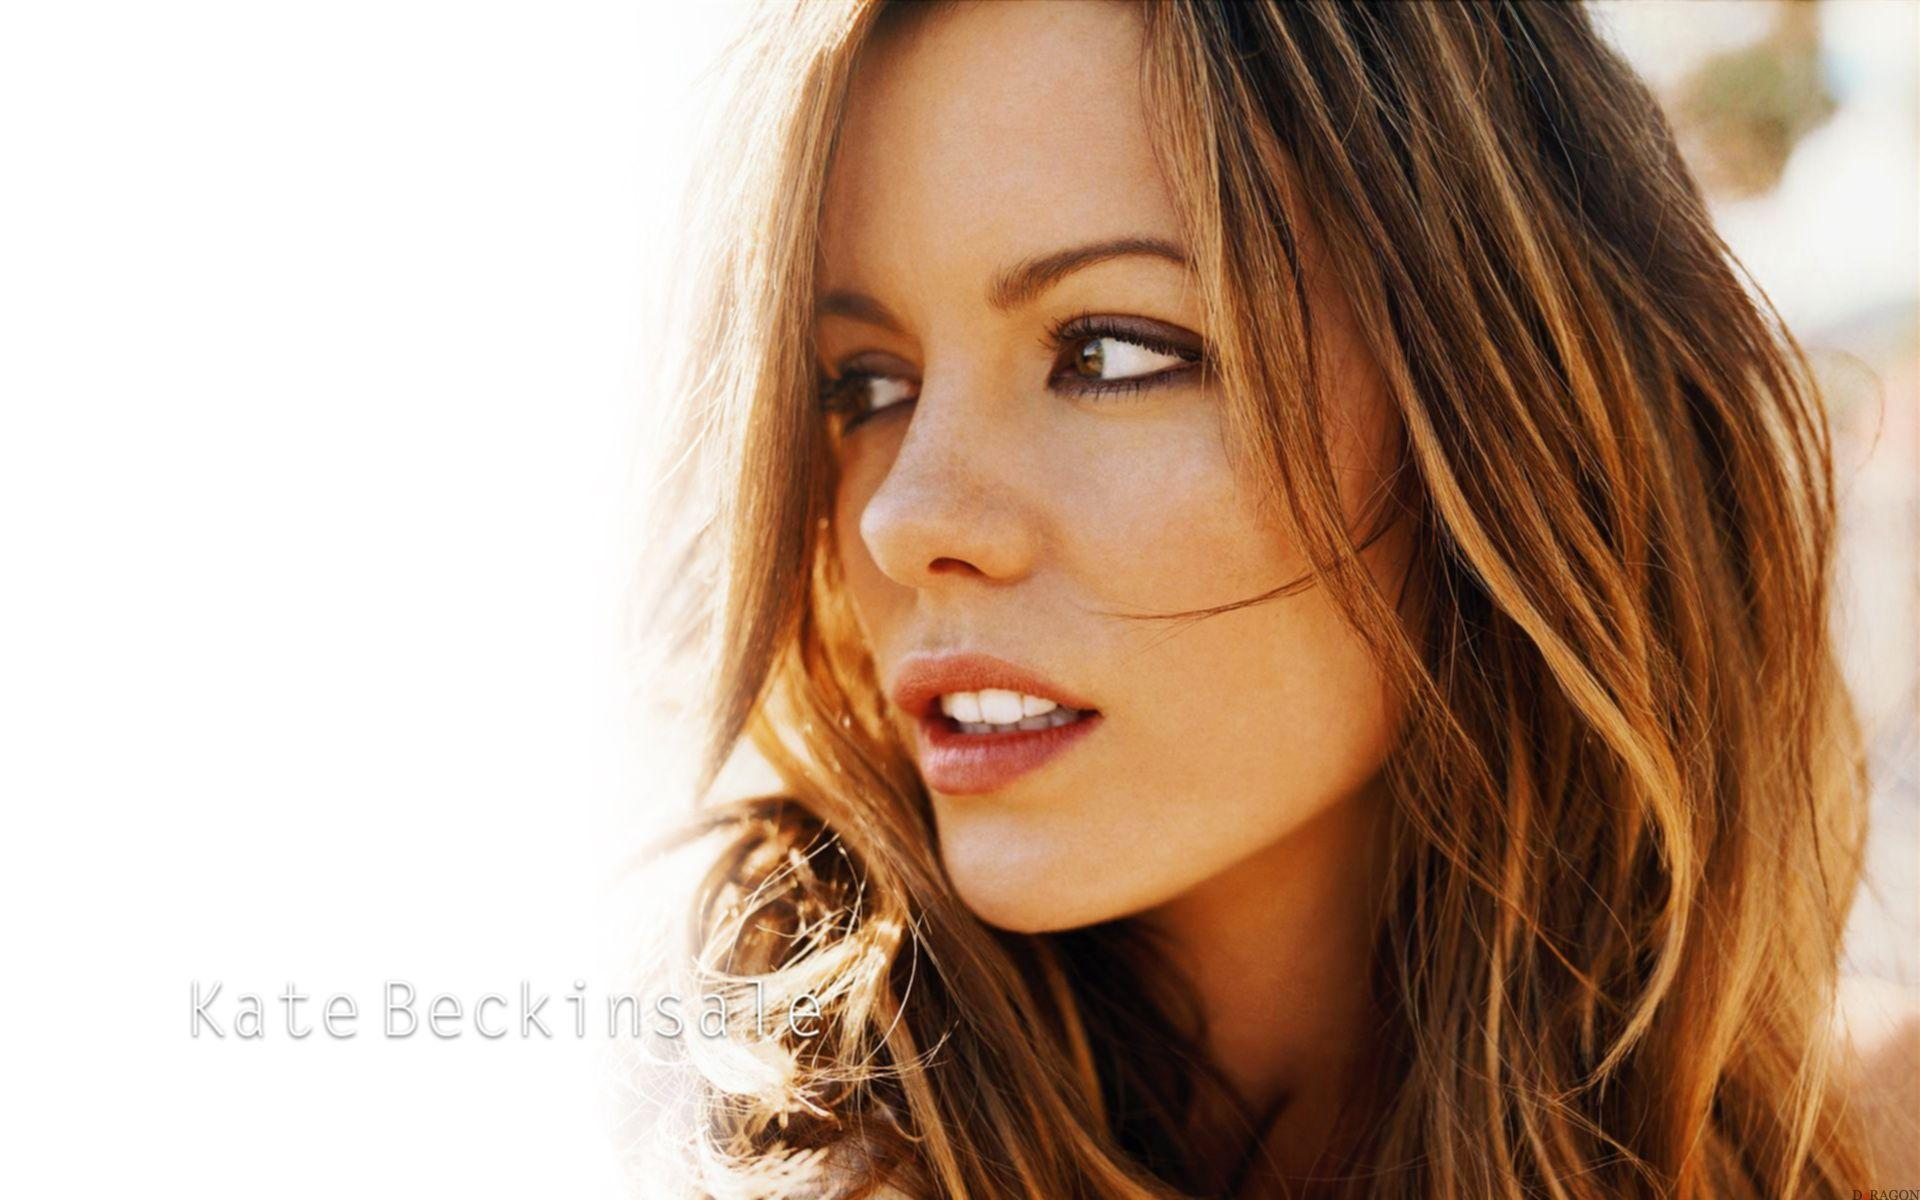 kate beckinsale hd wallpapers hd wallpapers of kate beckinsale